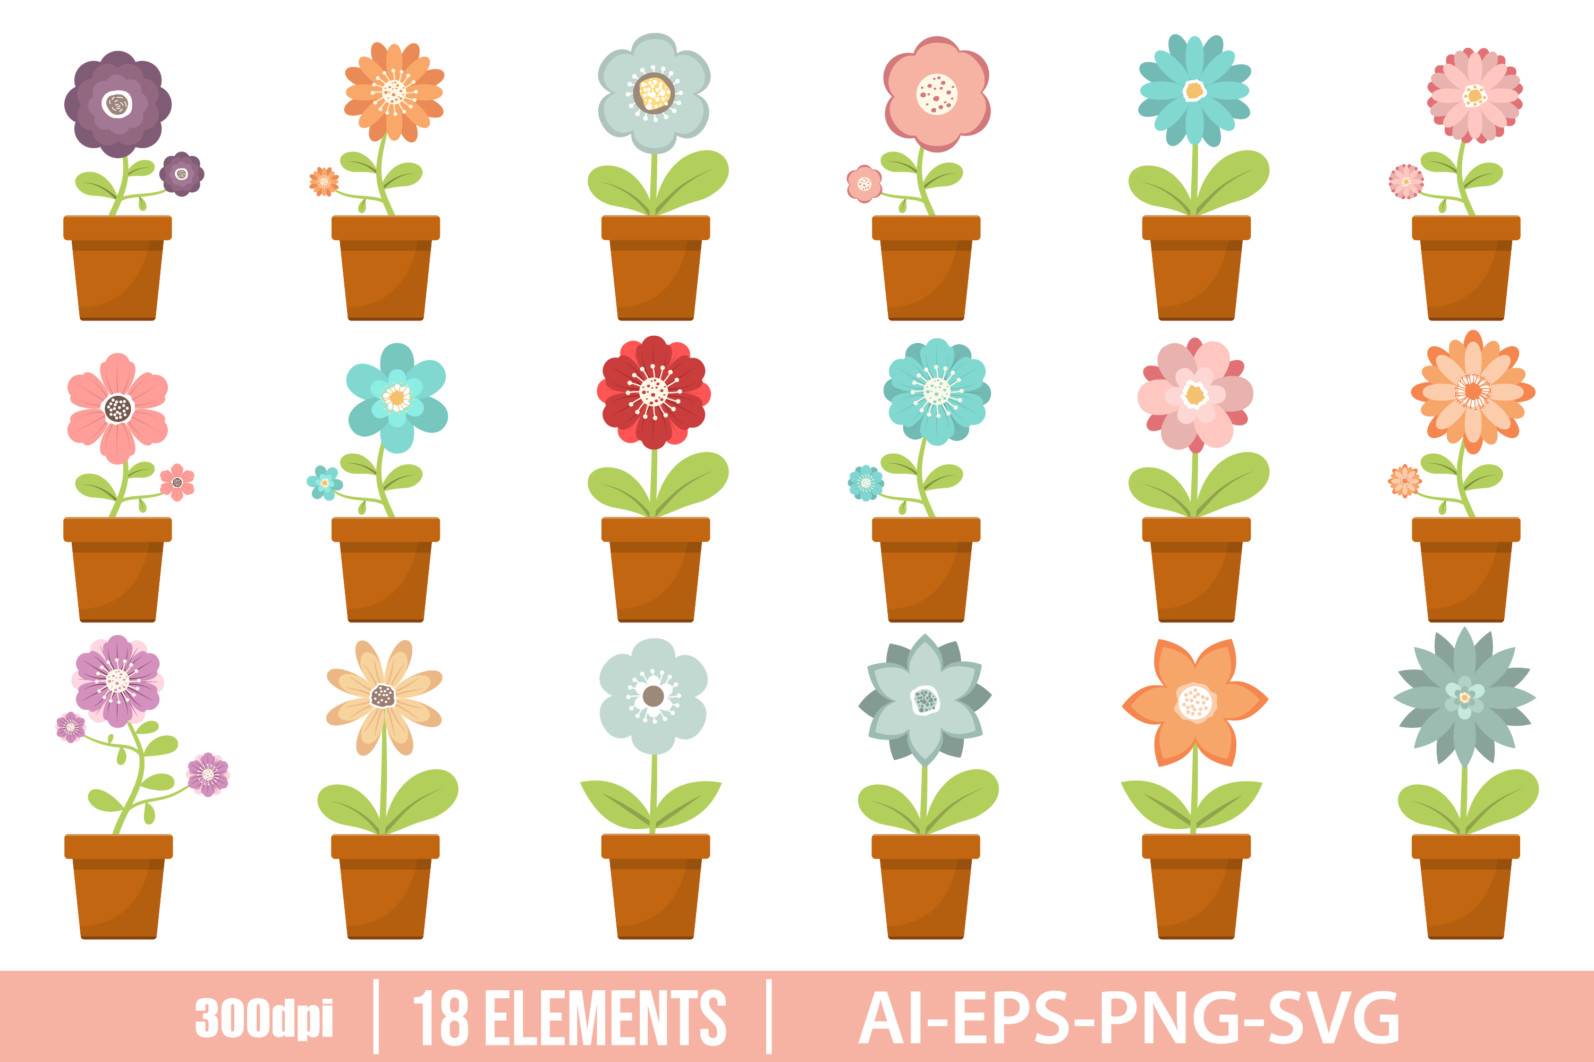 How flower in pot clipart vector design illustration. Flower pot set. Vector Clipart Print - FLOWER IN POT scaled -